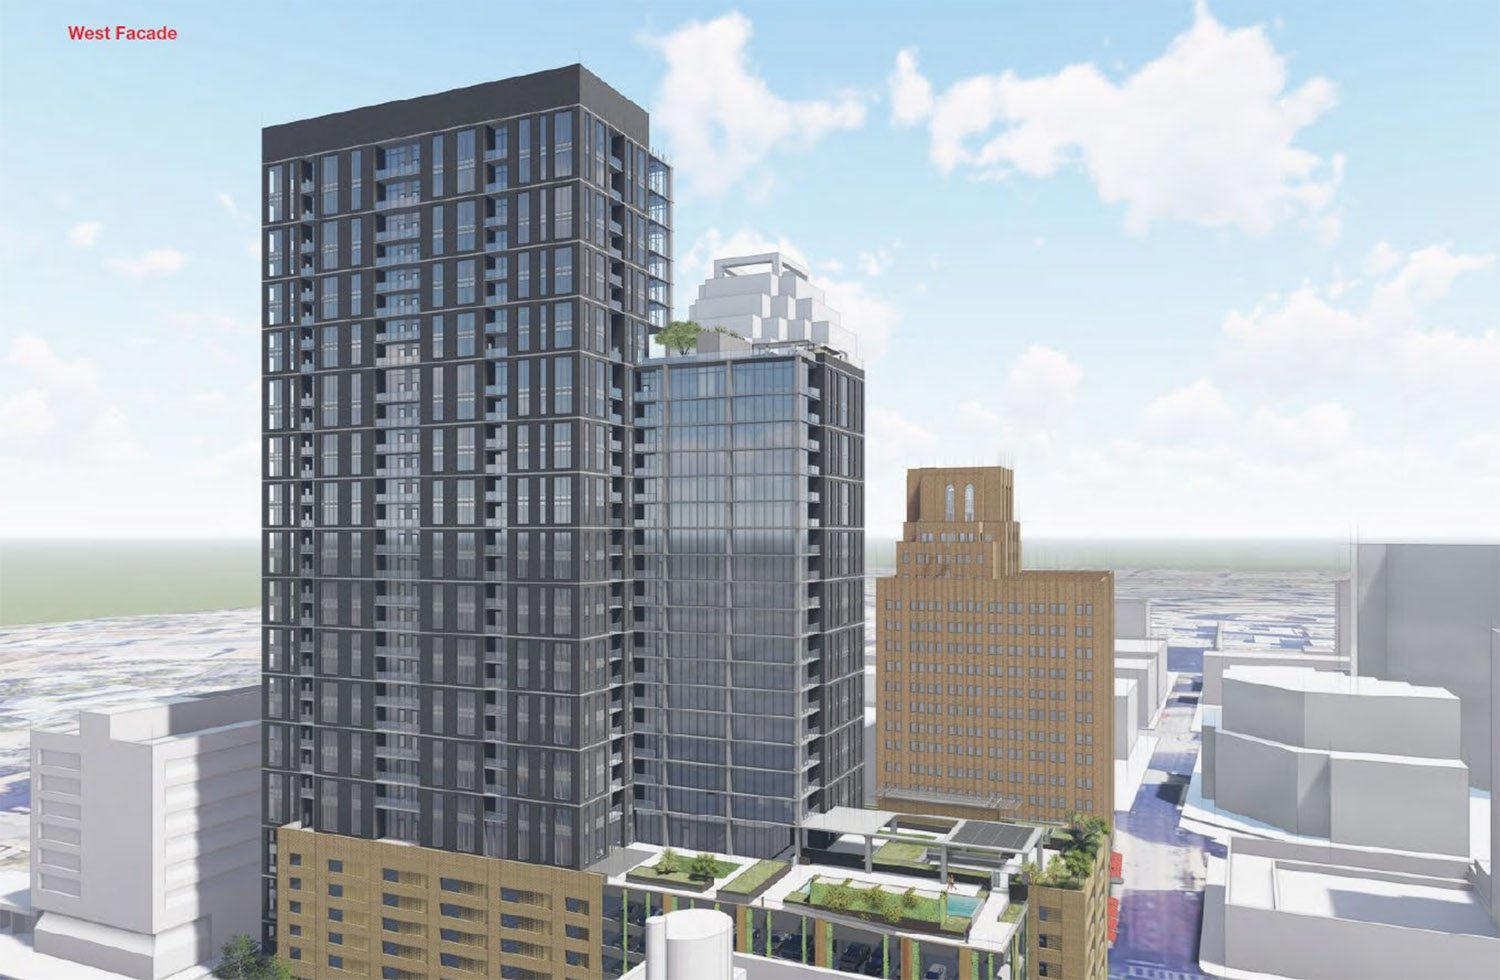 Rendering shows the west facade of Weston Urban's proposed 32-story tower at 305 Soledad St. <em>Courtesy Weston Urban</em>